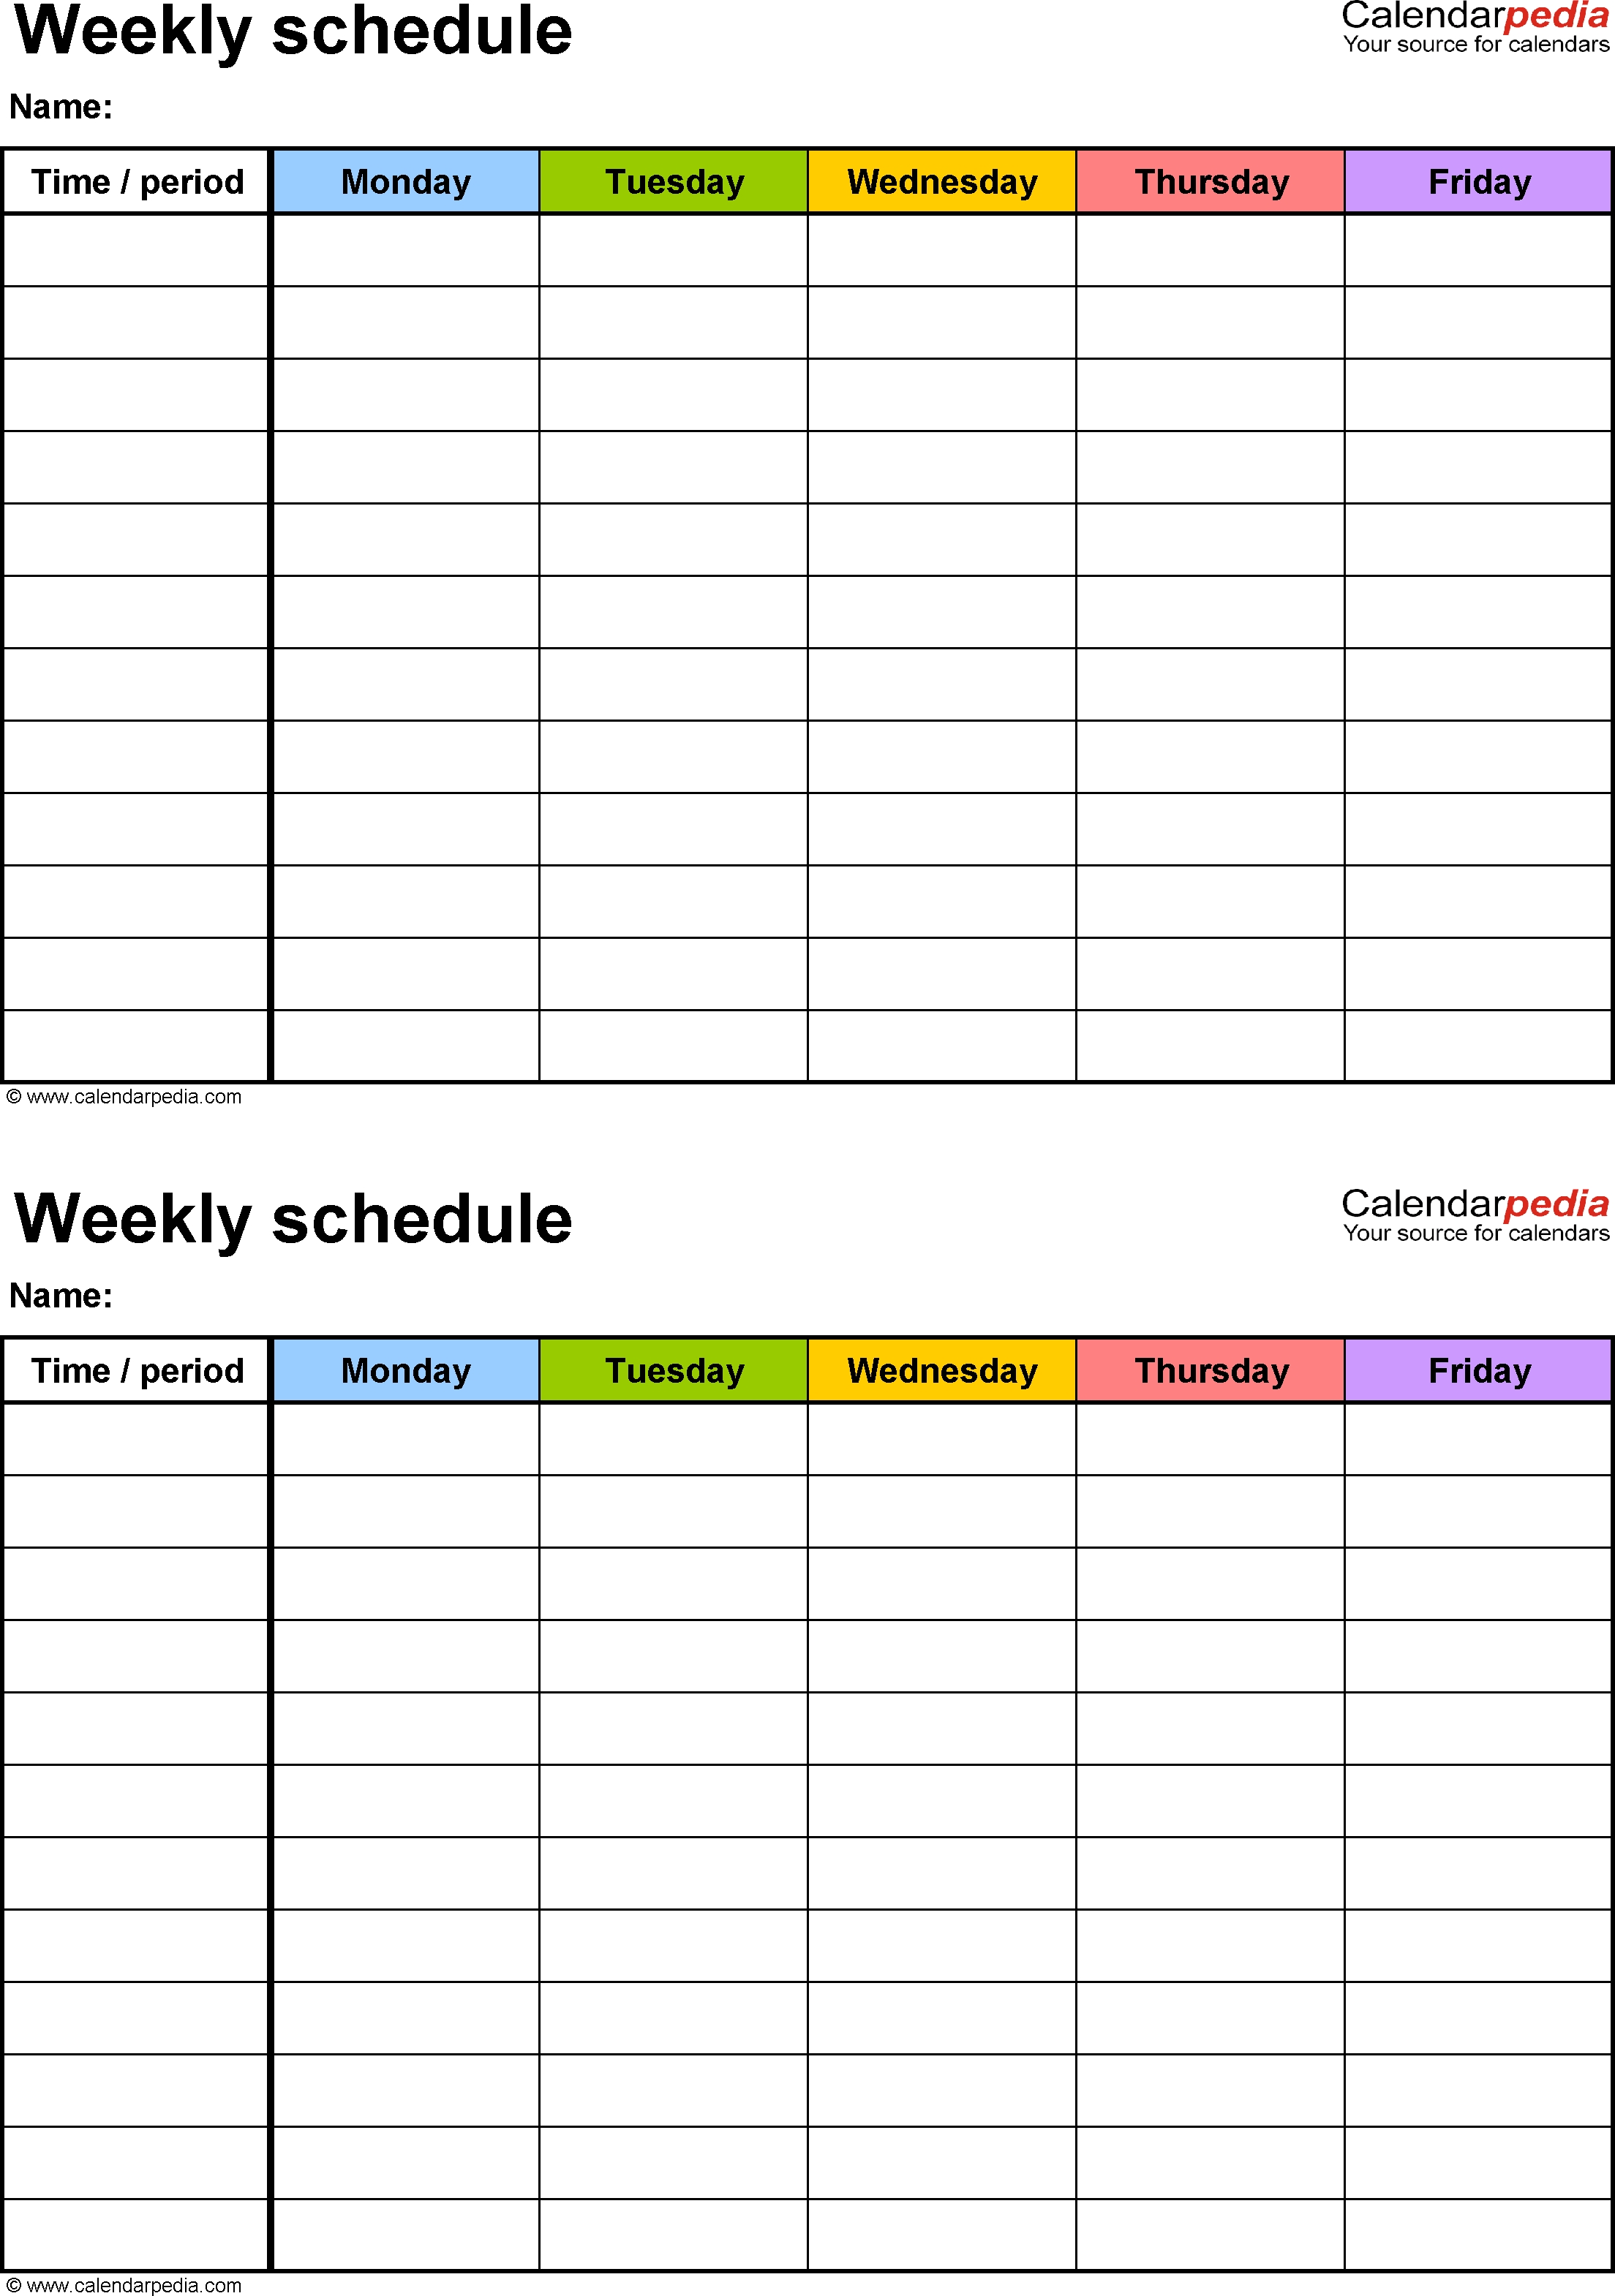 Free Weekly Schedule Templates For Word - 18 Templates pertaining to Weekly Calendar Template 5 Days